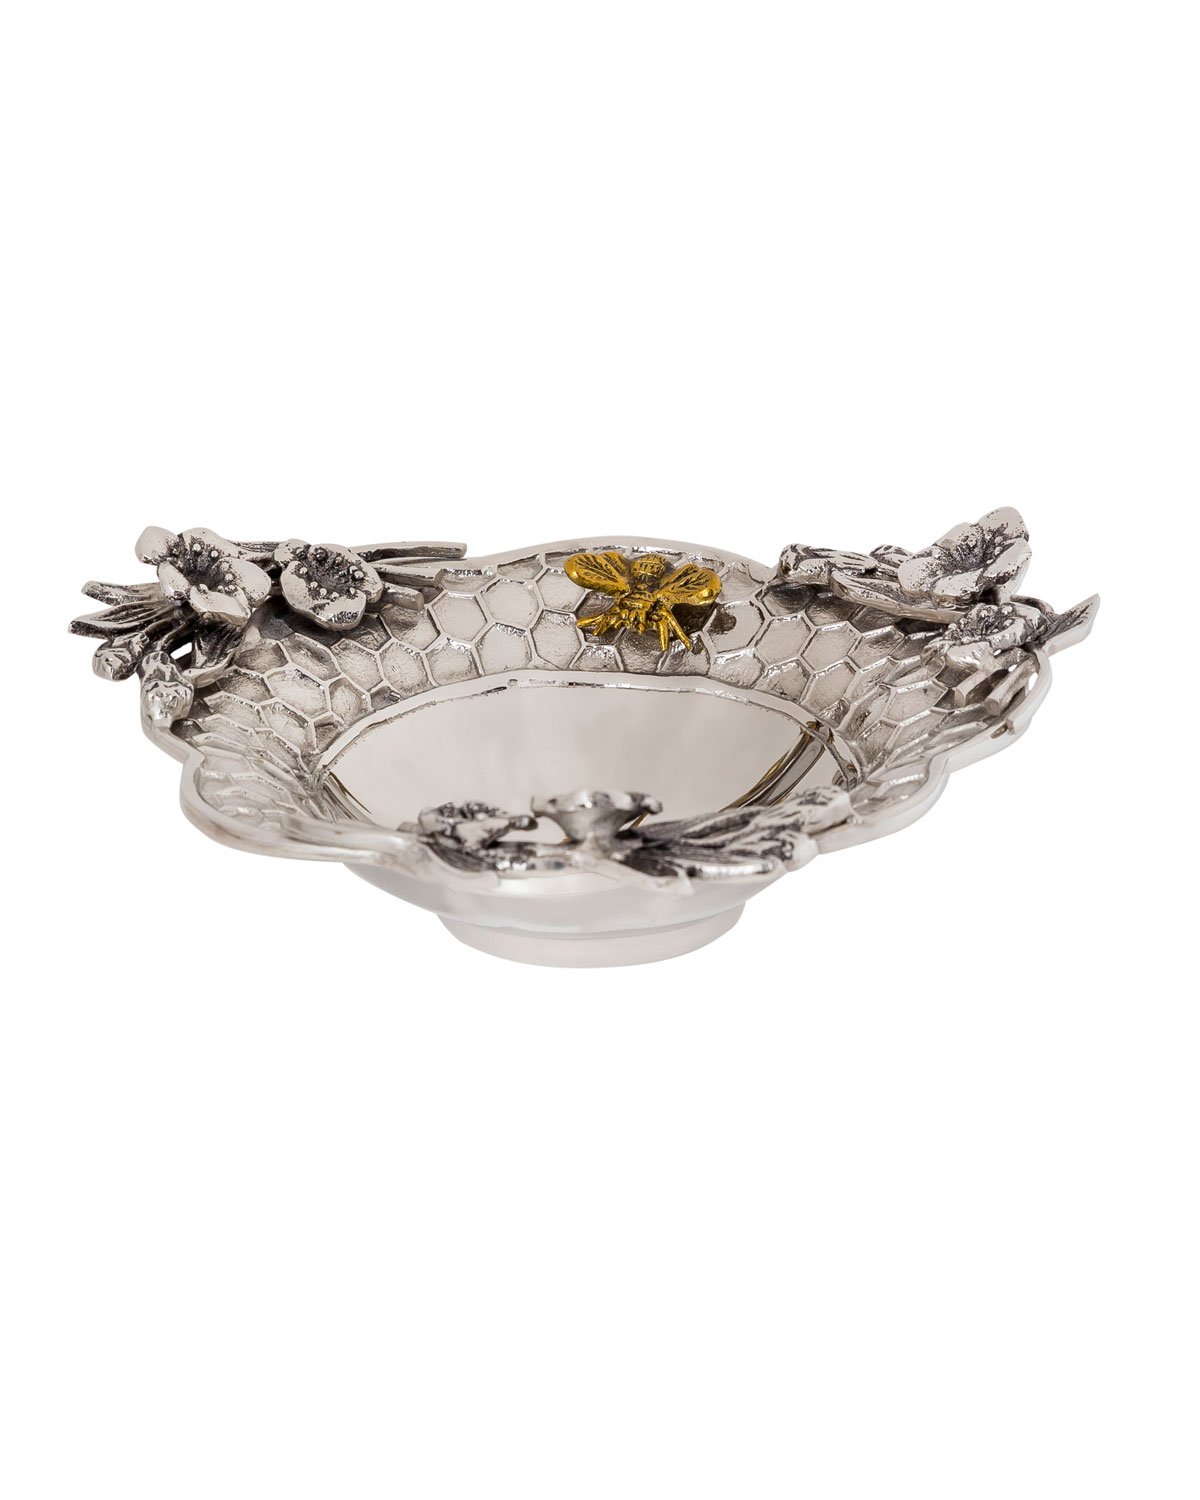 Bumble Bee Multi Purpose Bowl by Star Home Designs